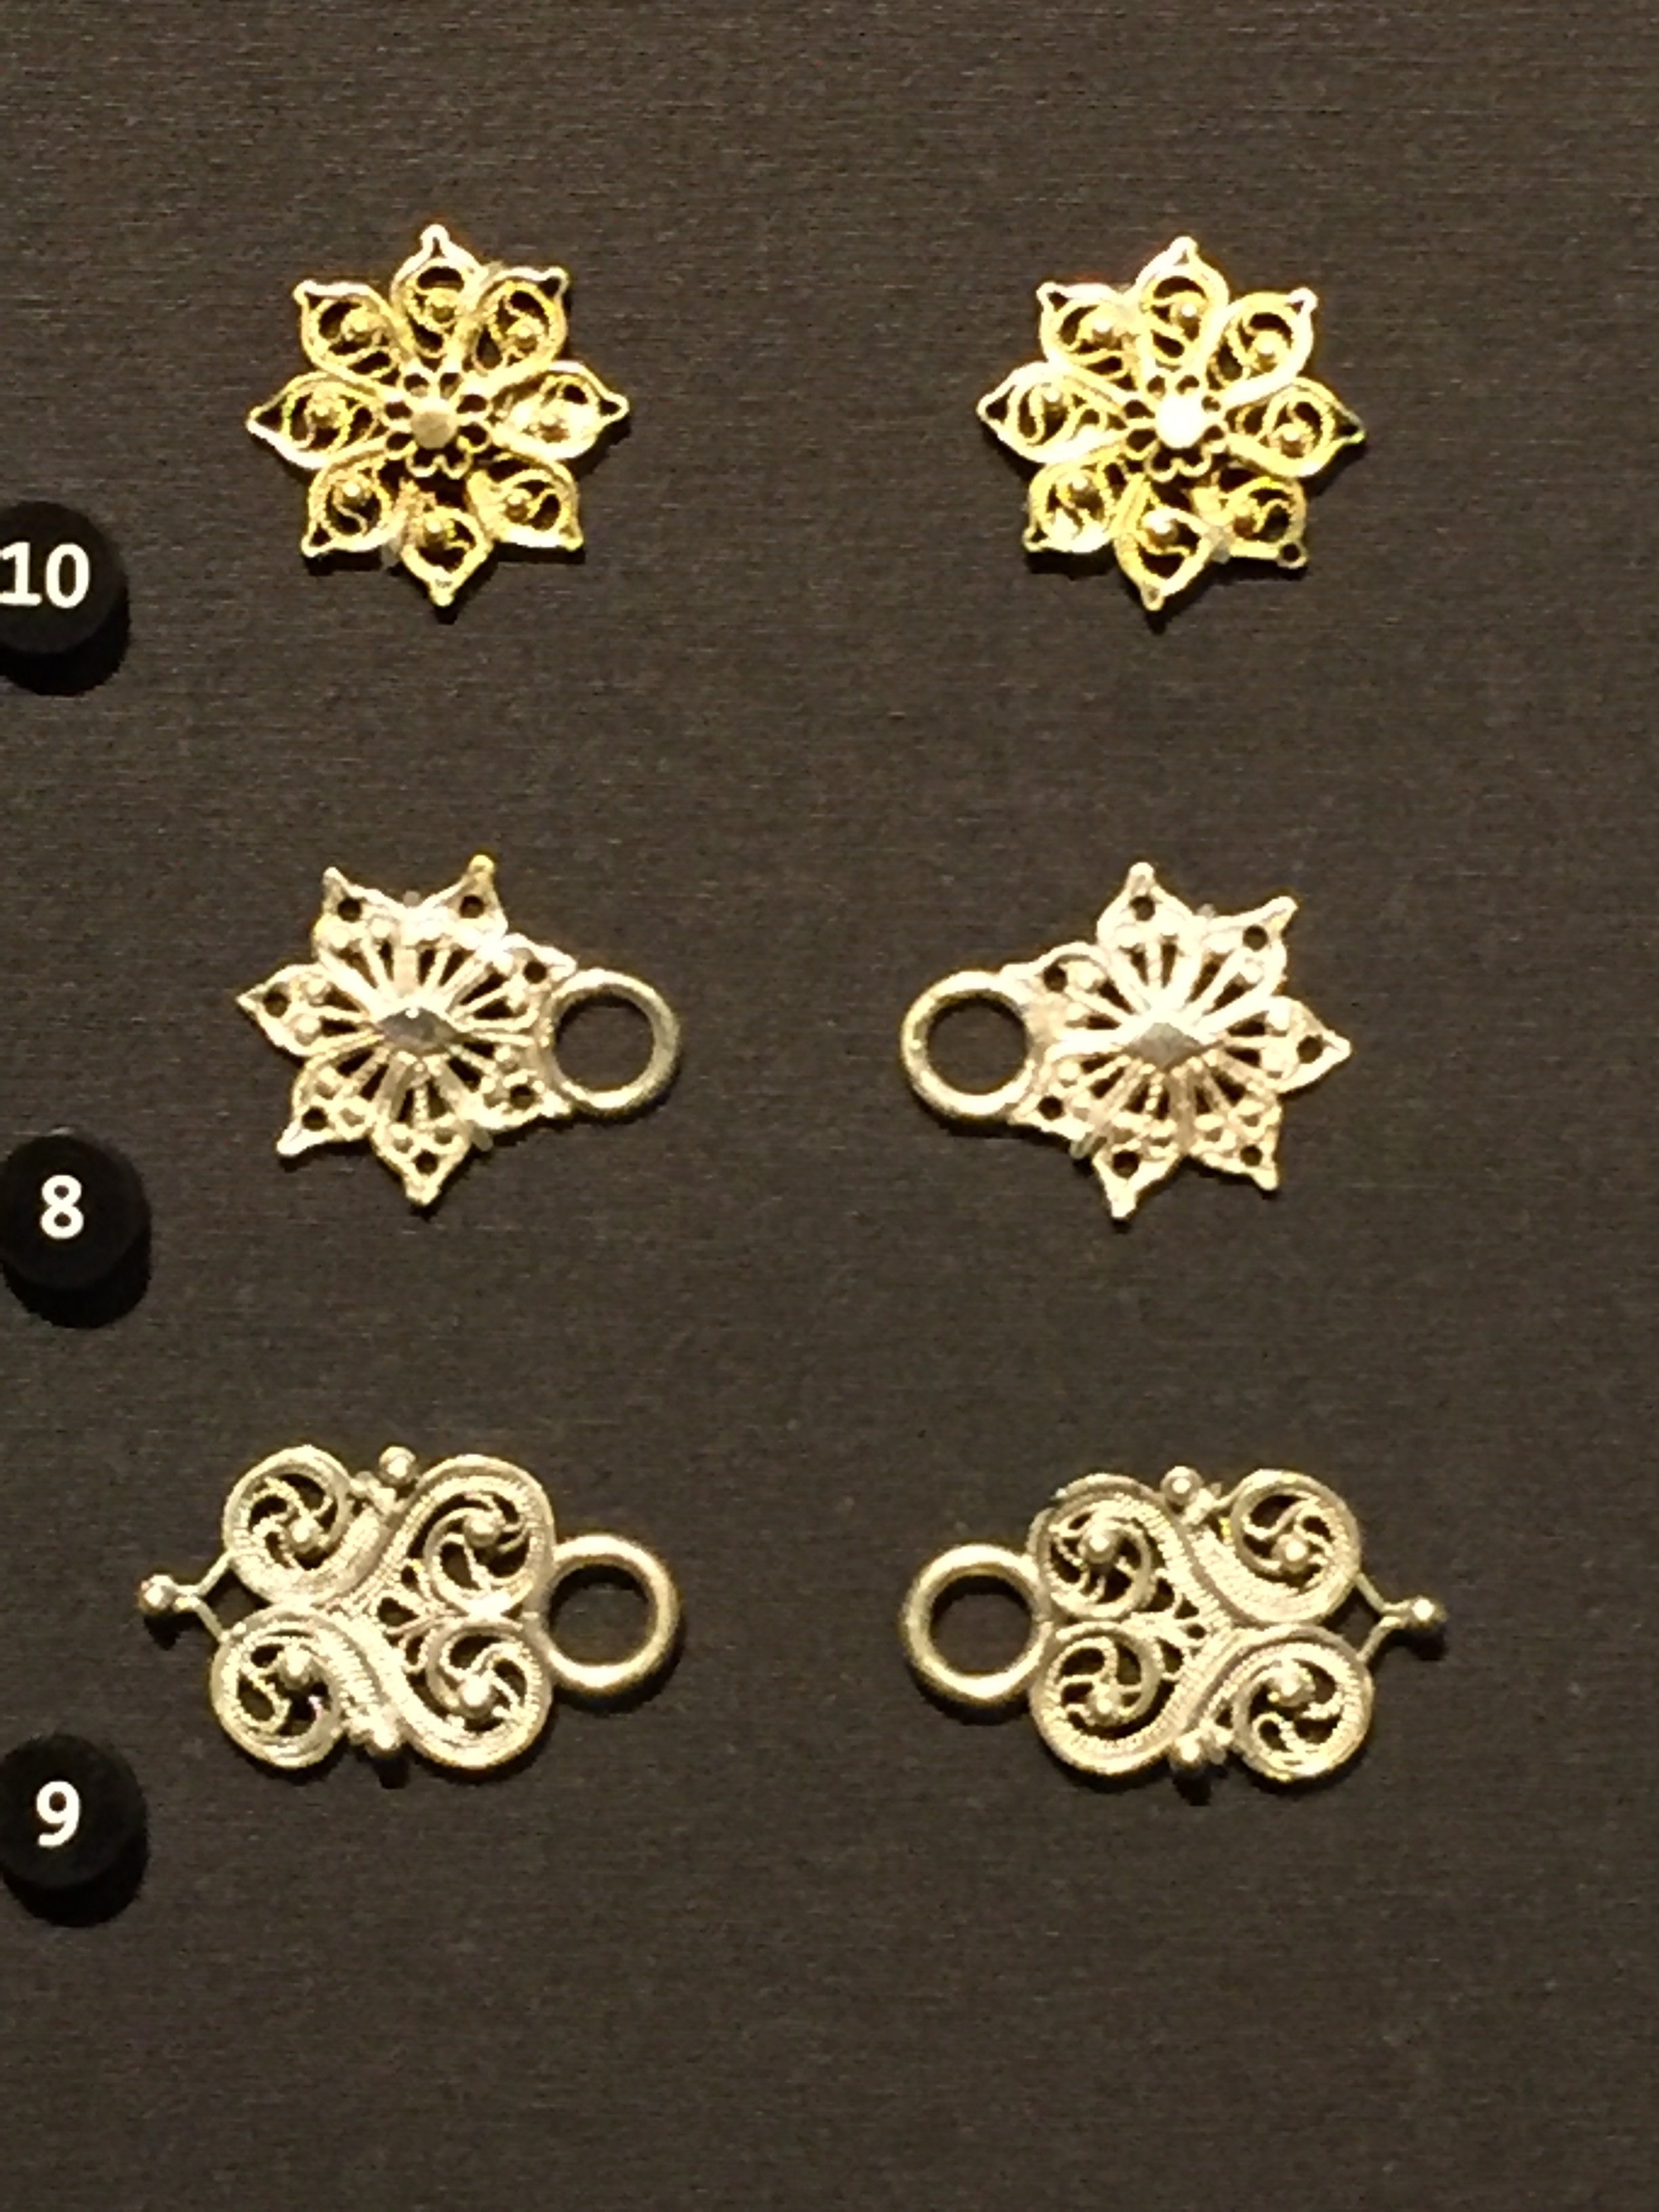 # 10 Appliques 1800-1900. #8 &9 Bodice fasteners 1800-1900. Photo taken by Aleks Byrd at Victoria Albert Museum